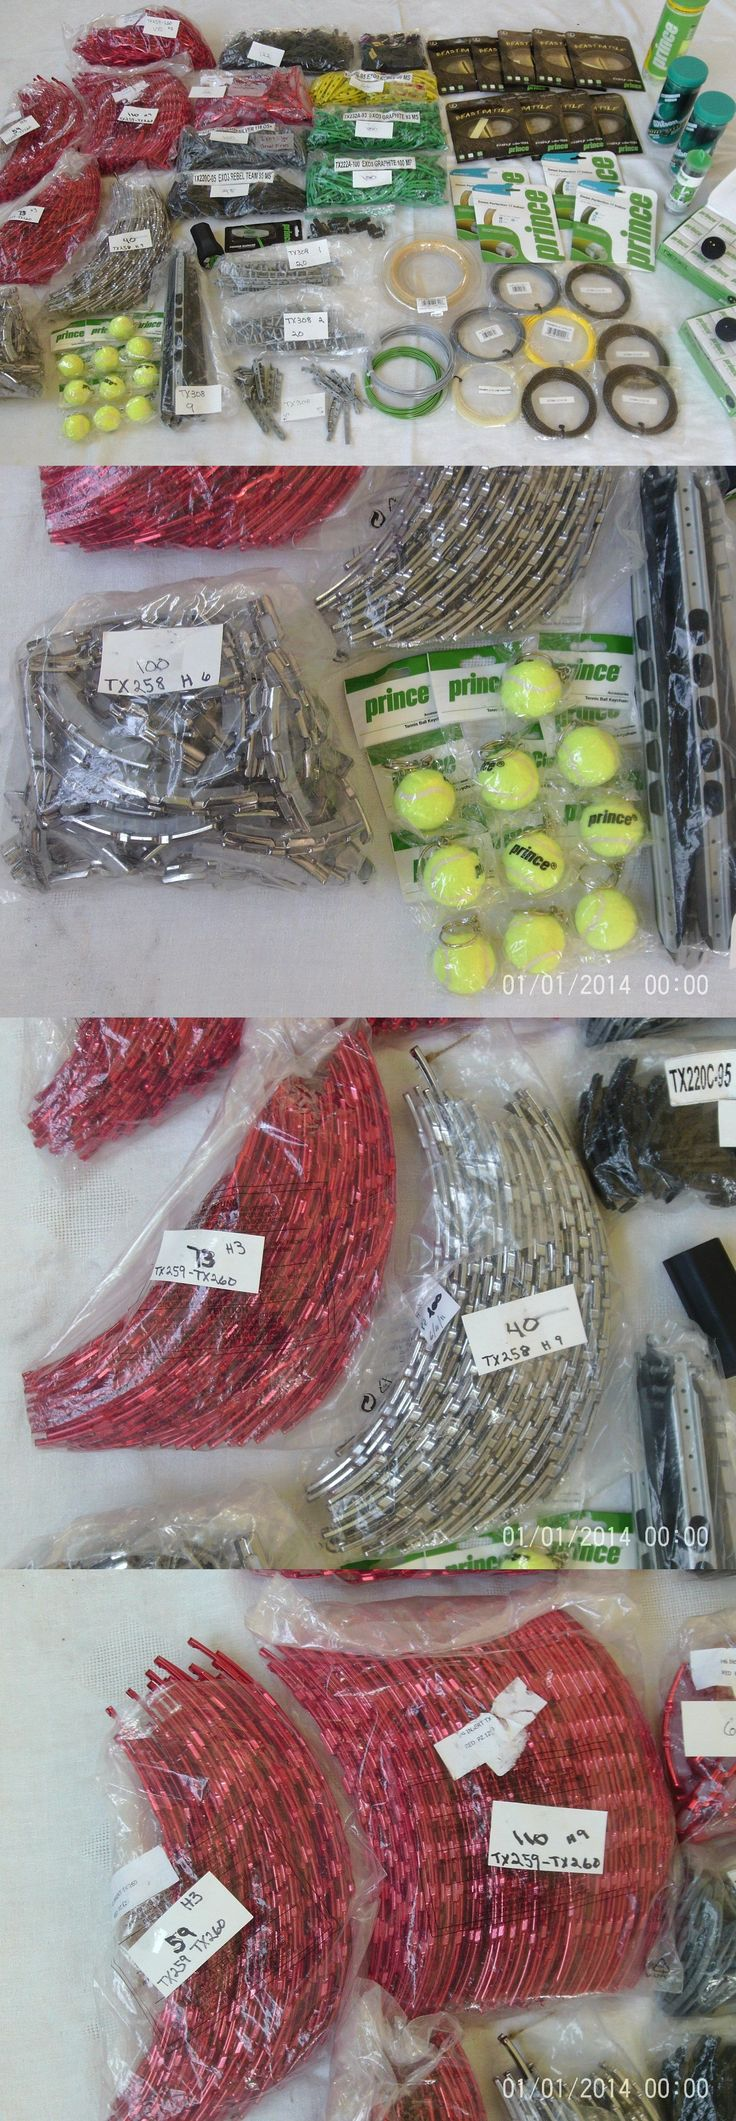 Other Tennis 2917: Large Mixed Lot Prince Tennis Racquet Bumpers, Grommets, String, Balls -> BUY IT NOW ONLY: $175 on eBay!